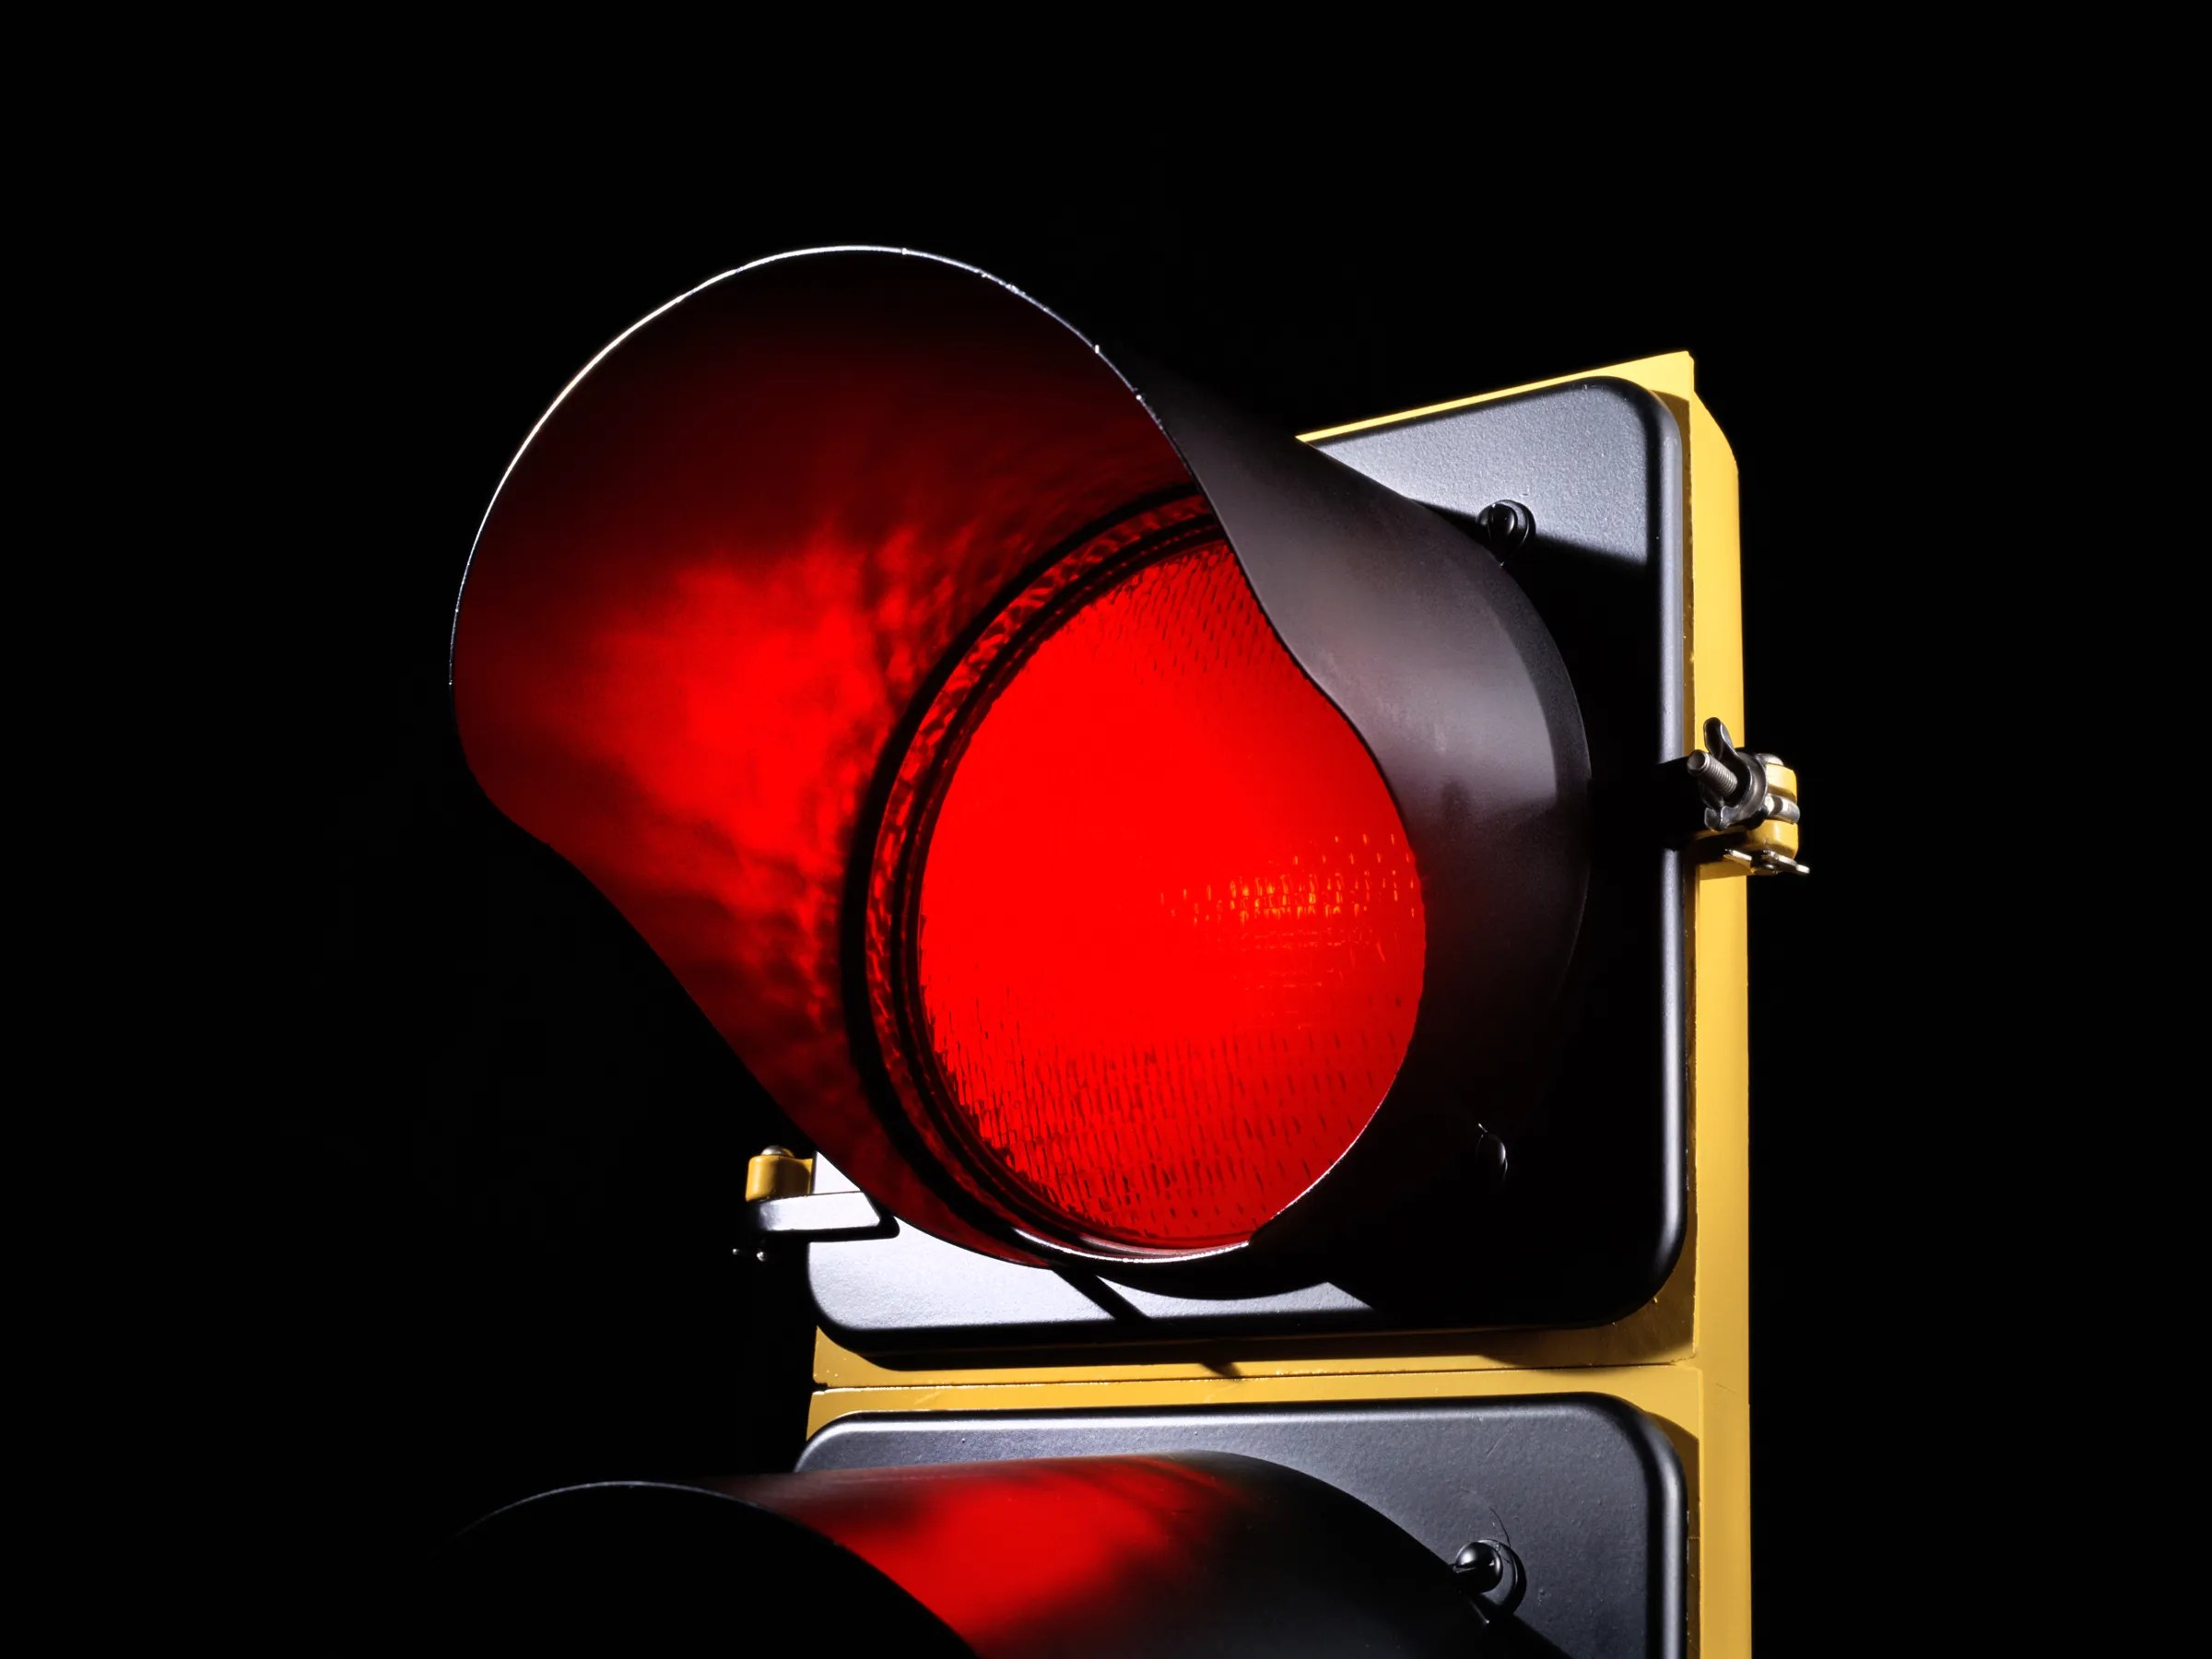 Red Light Cameras May Issue Tickets Using The Wrong